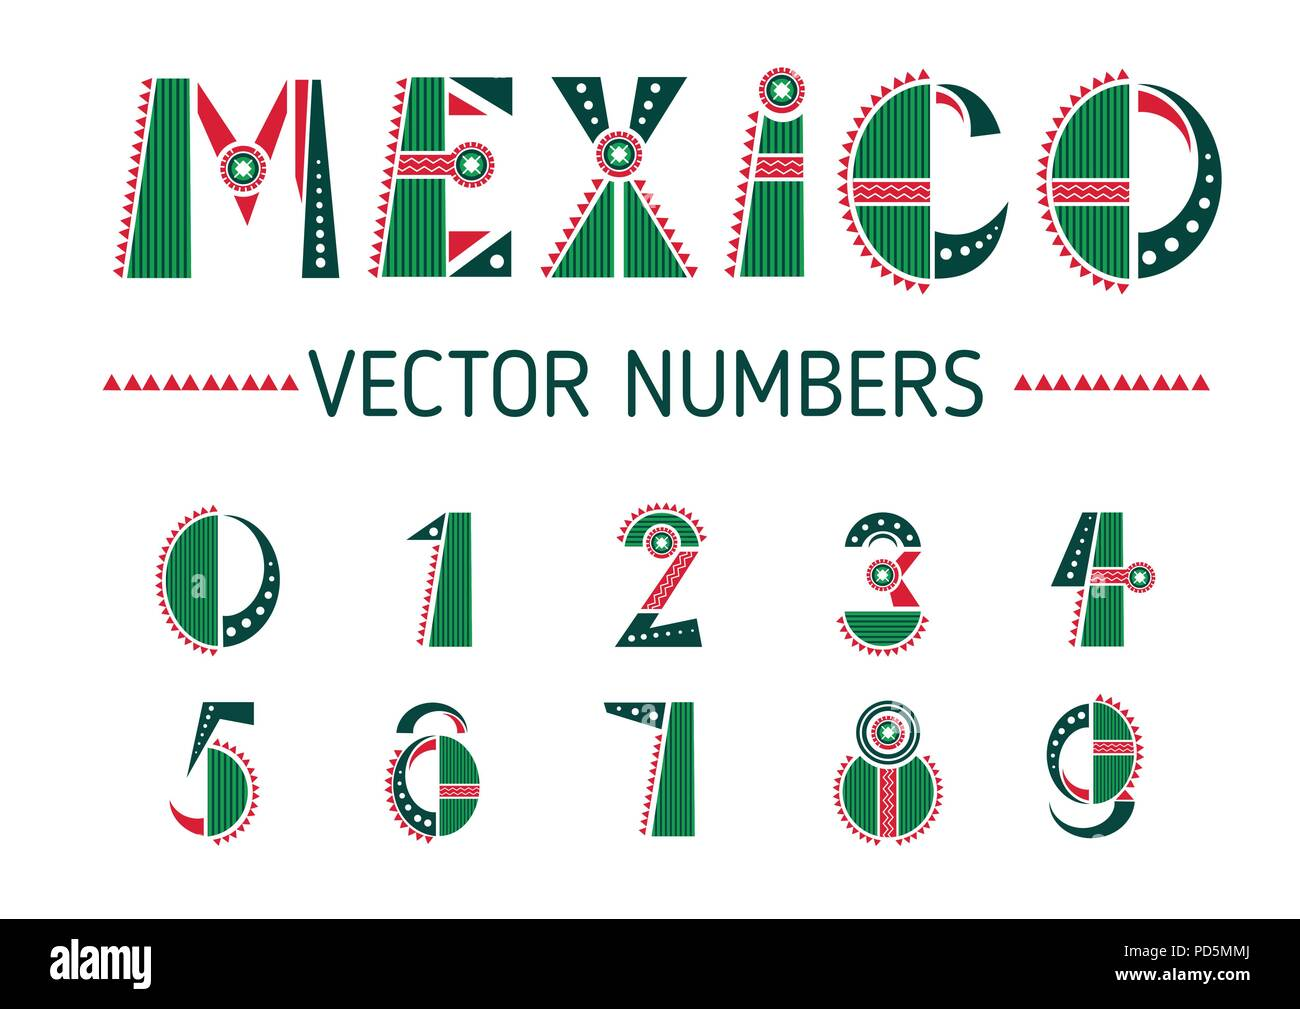 Mexico number set - Stock Image